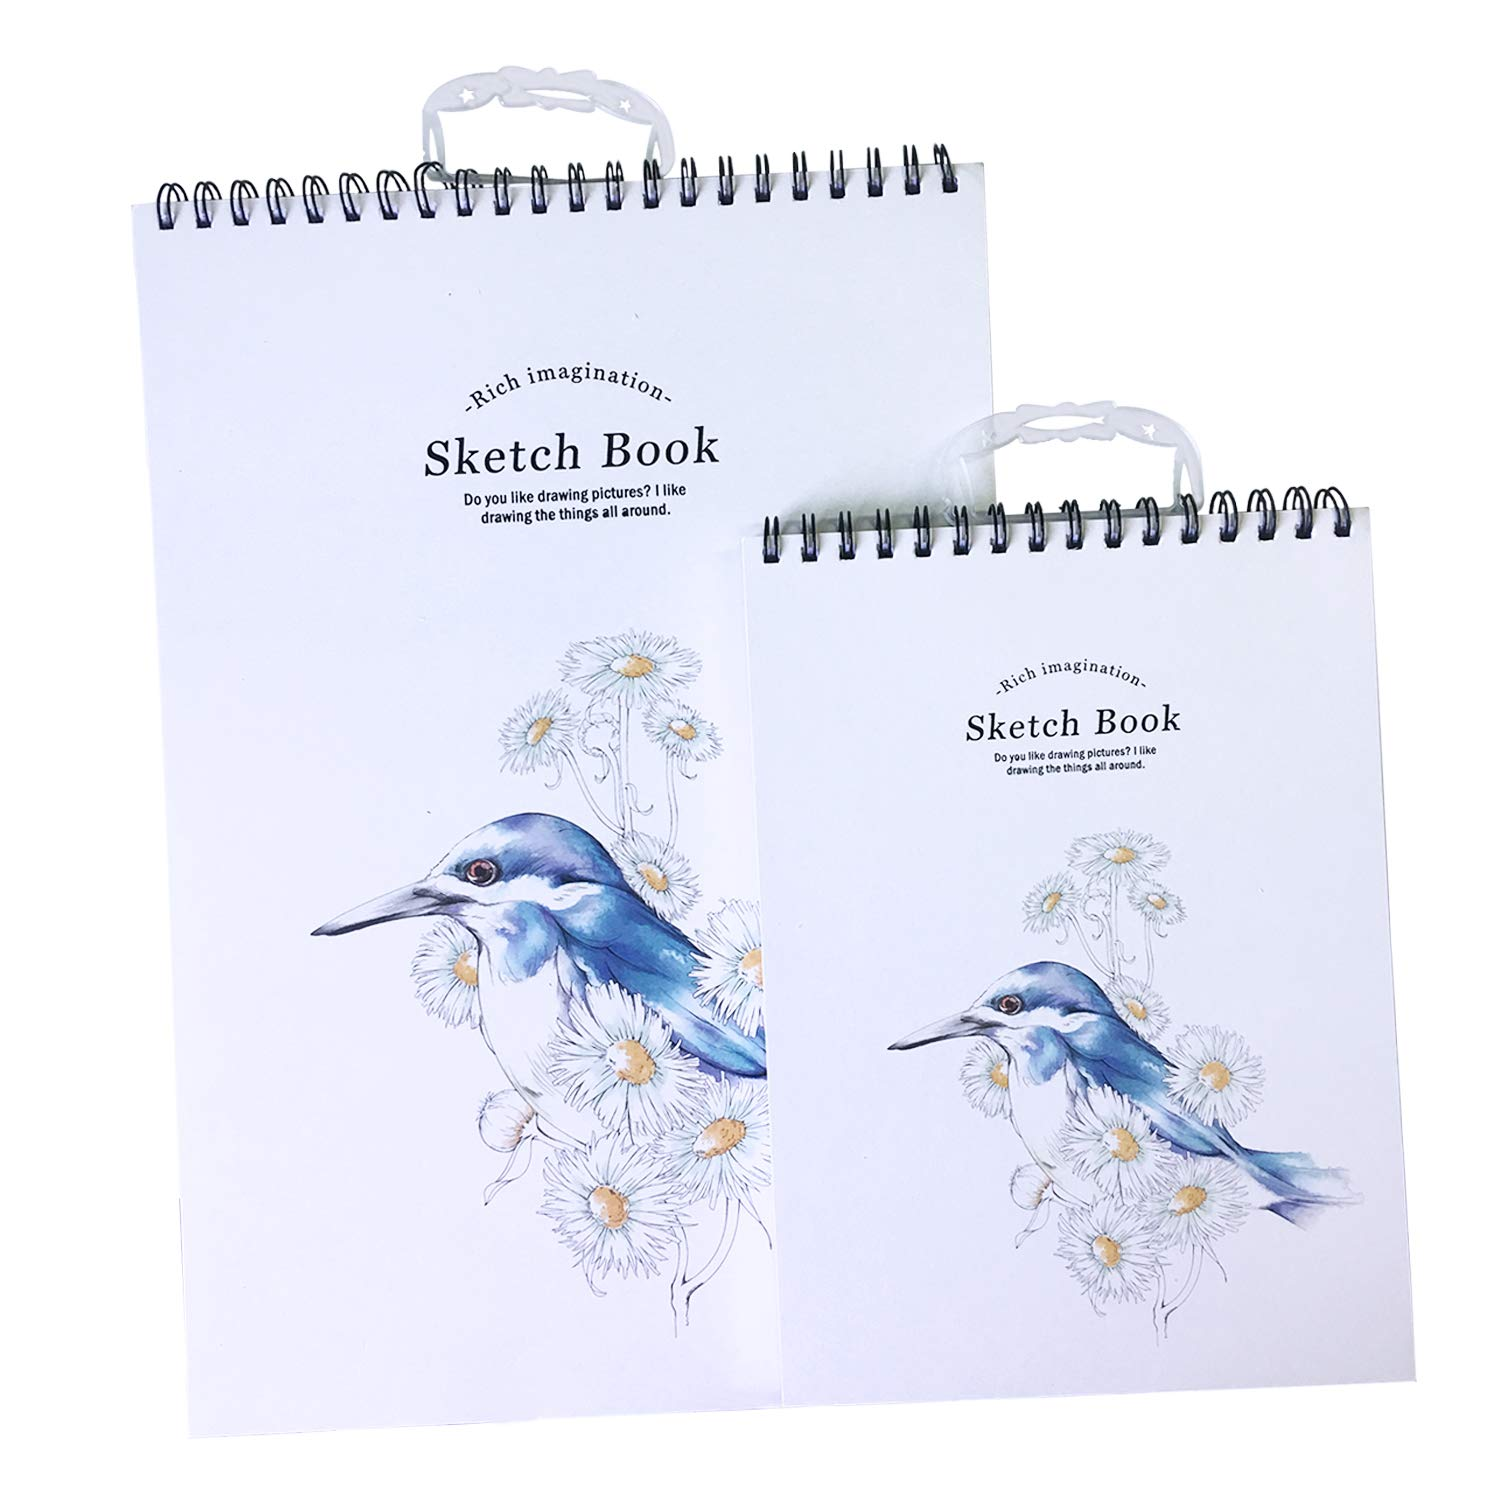 Lasten Sketch Book, Sketch Pad, Sketch Pads for Artists, Sketchbooks, Sketch Pads for Drawing & Sketching Paper, 2 Pack of A3 and A4, Perfect Art Book for Sketching, Drawing, Notebooks (Bird)